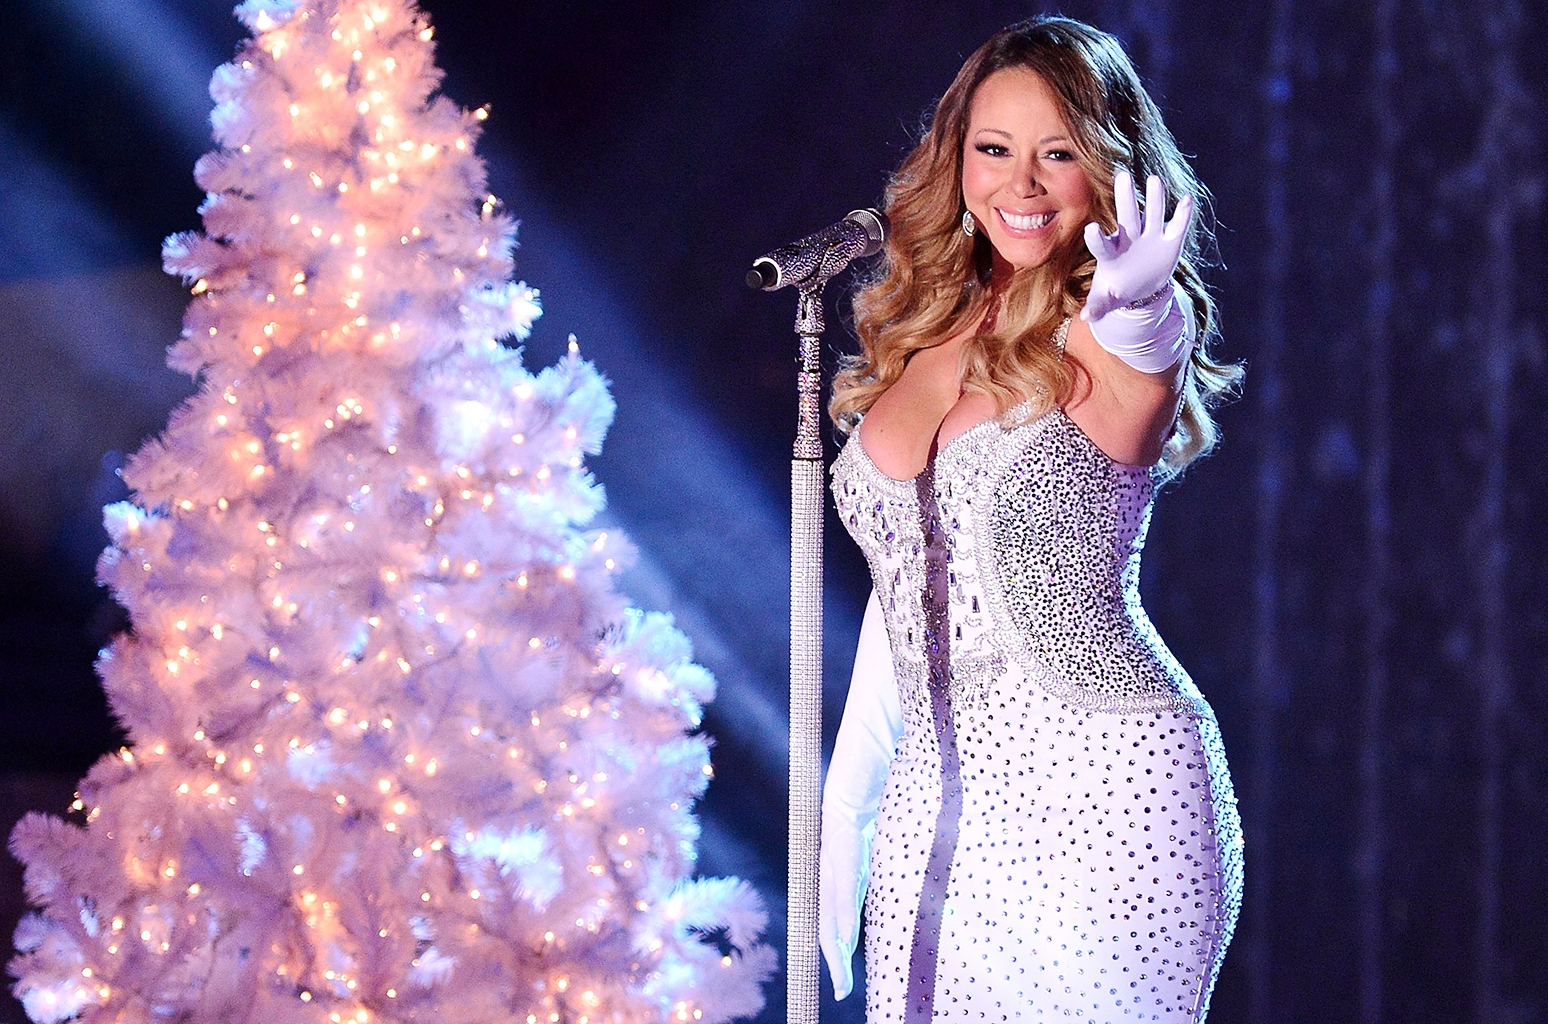 Mariah Carey FaceTimes With Fan Who Used Her Music in Viral Christmas Display